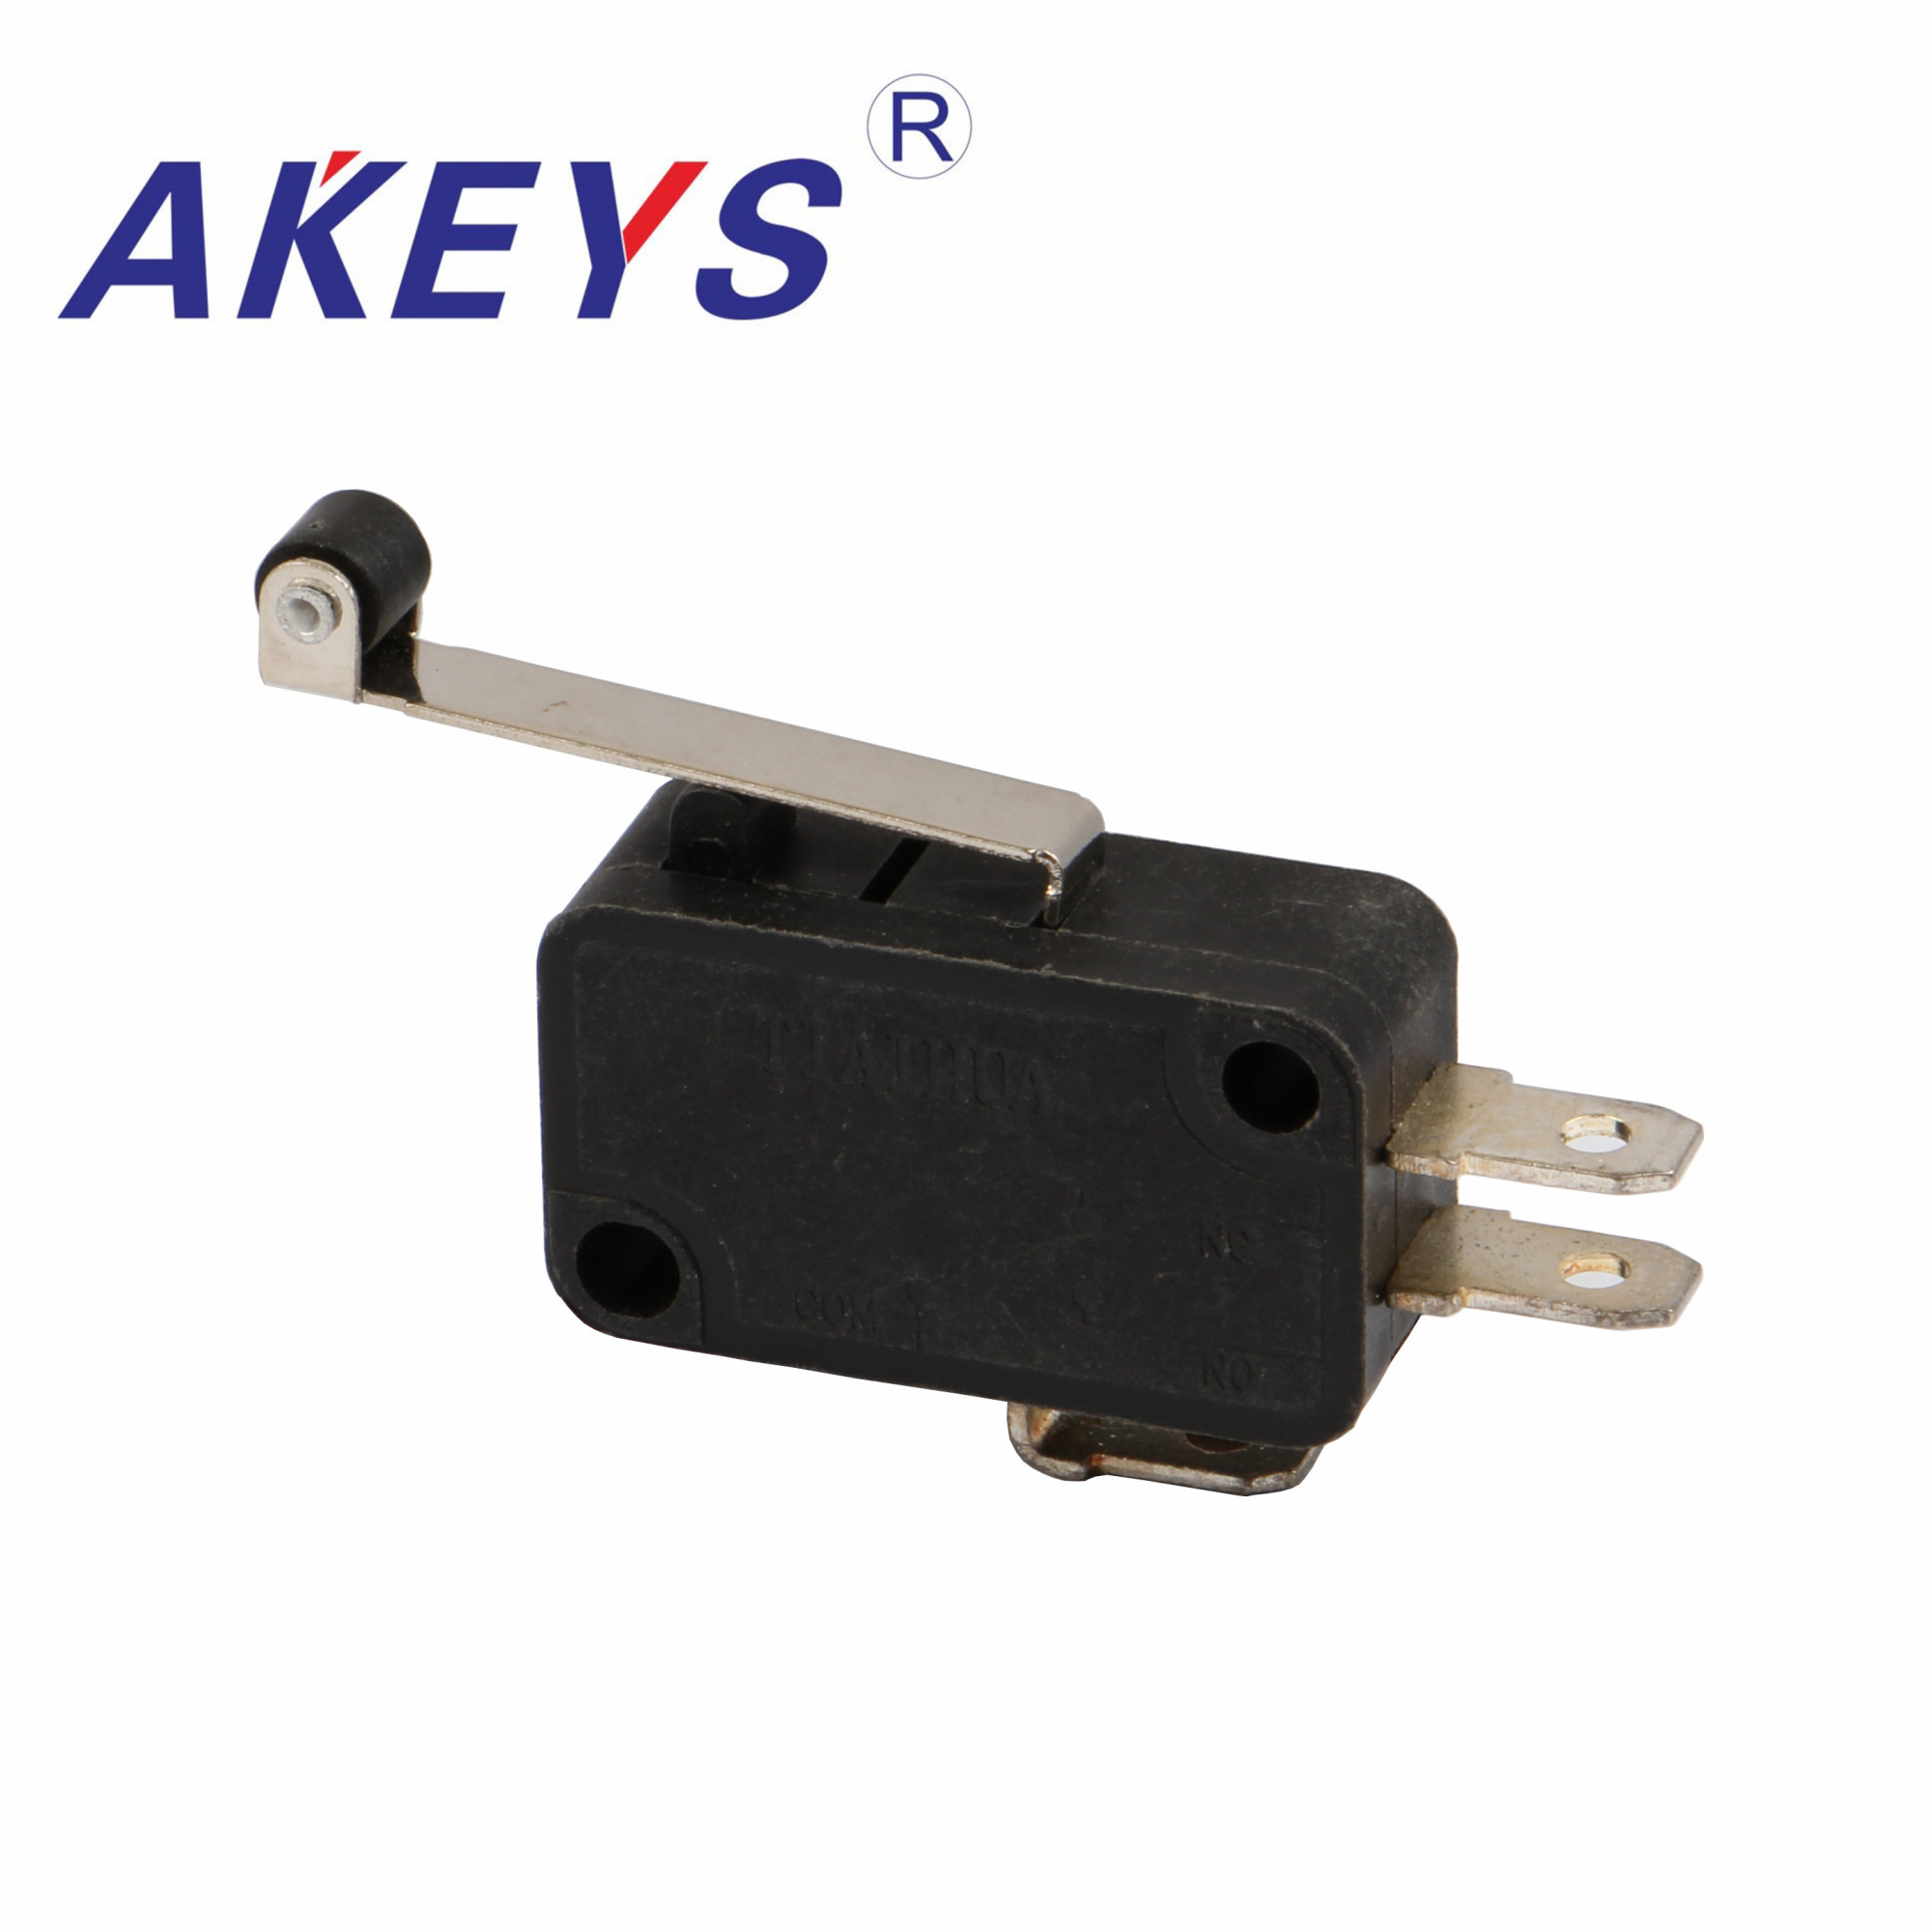 MS-019 2pins Large micro switch with wheel roller lever micro switch